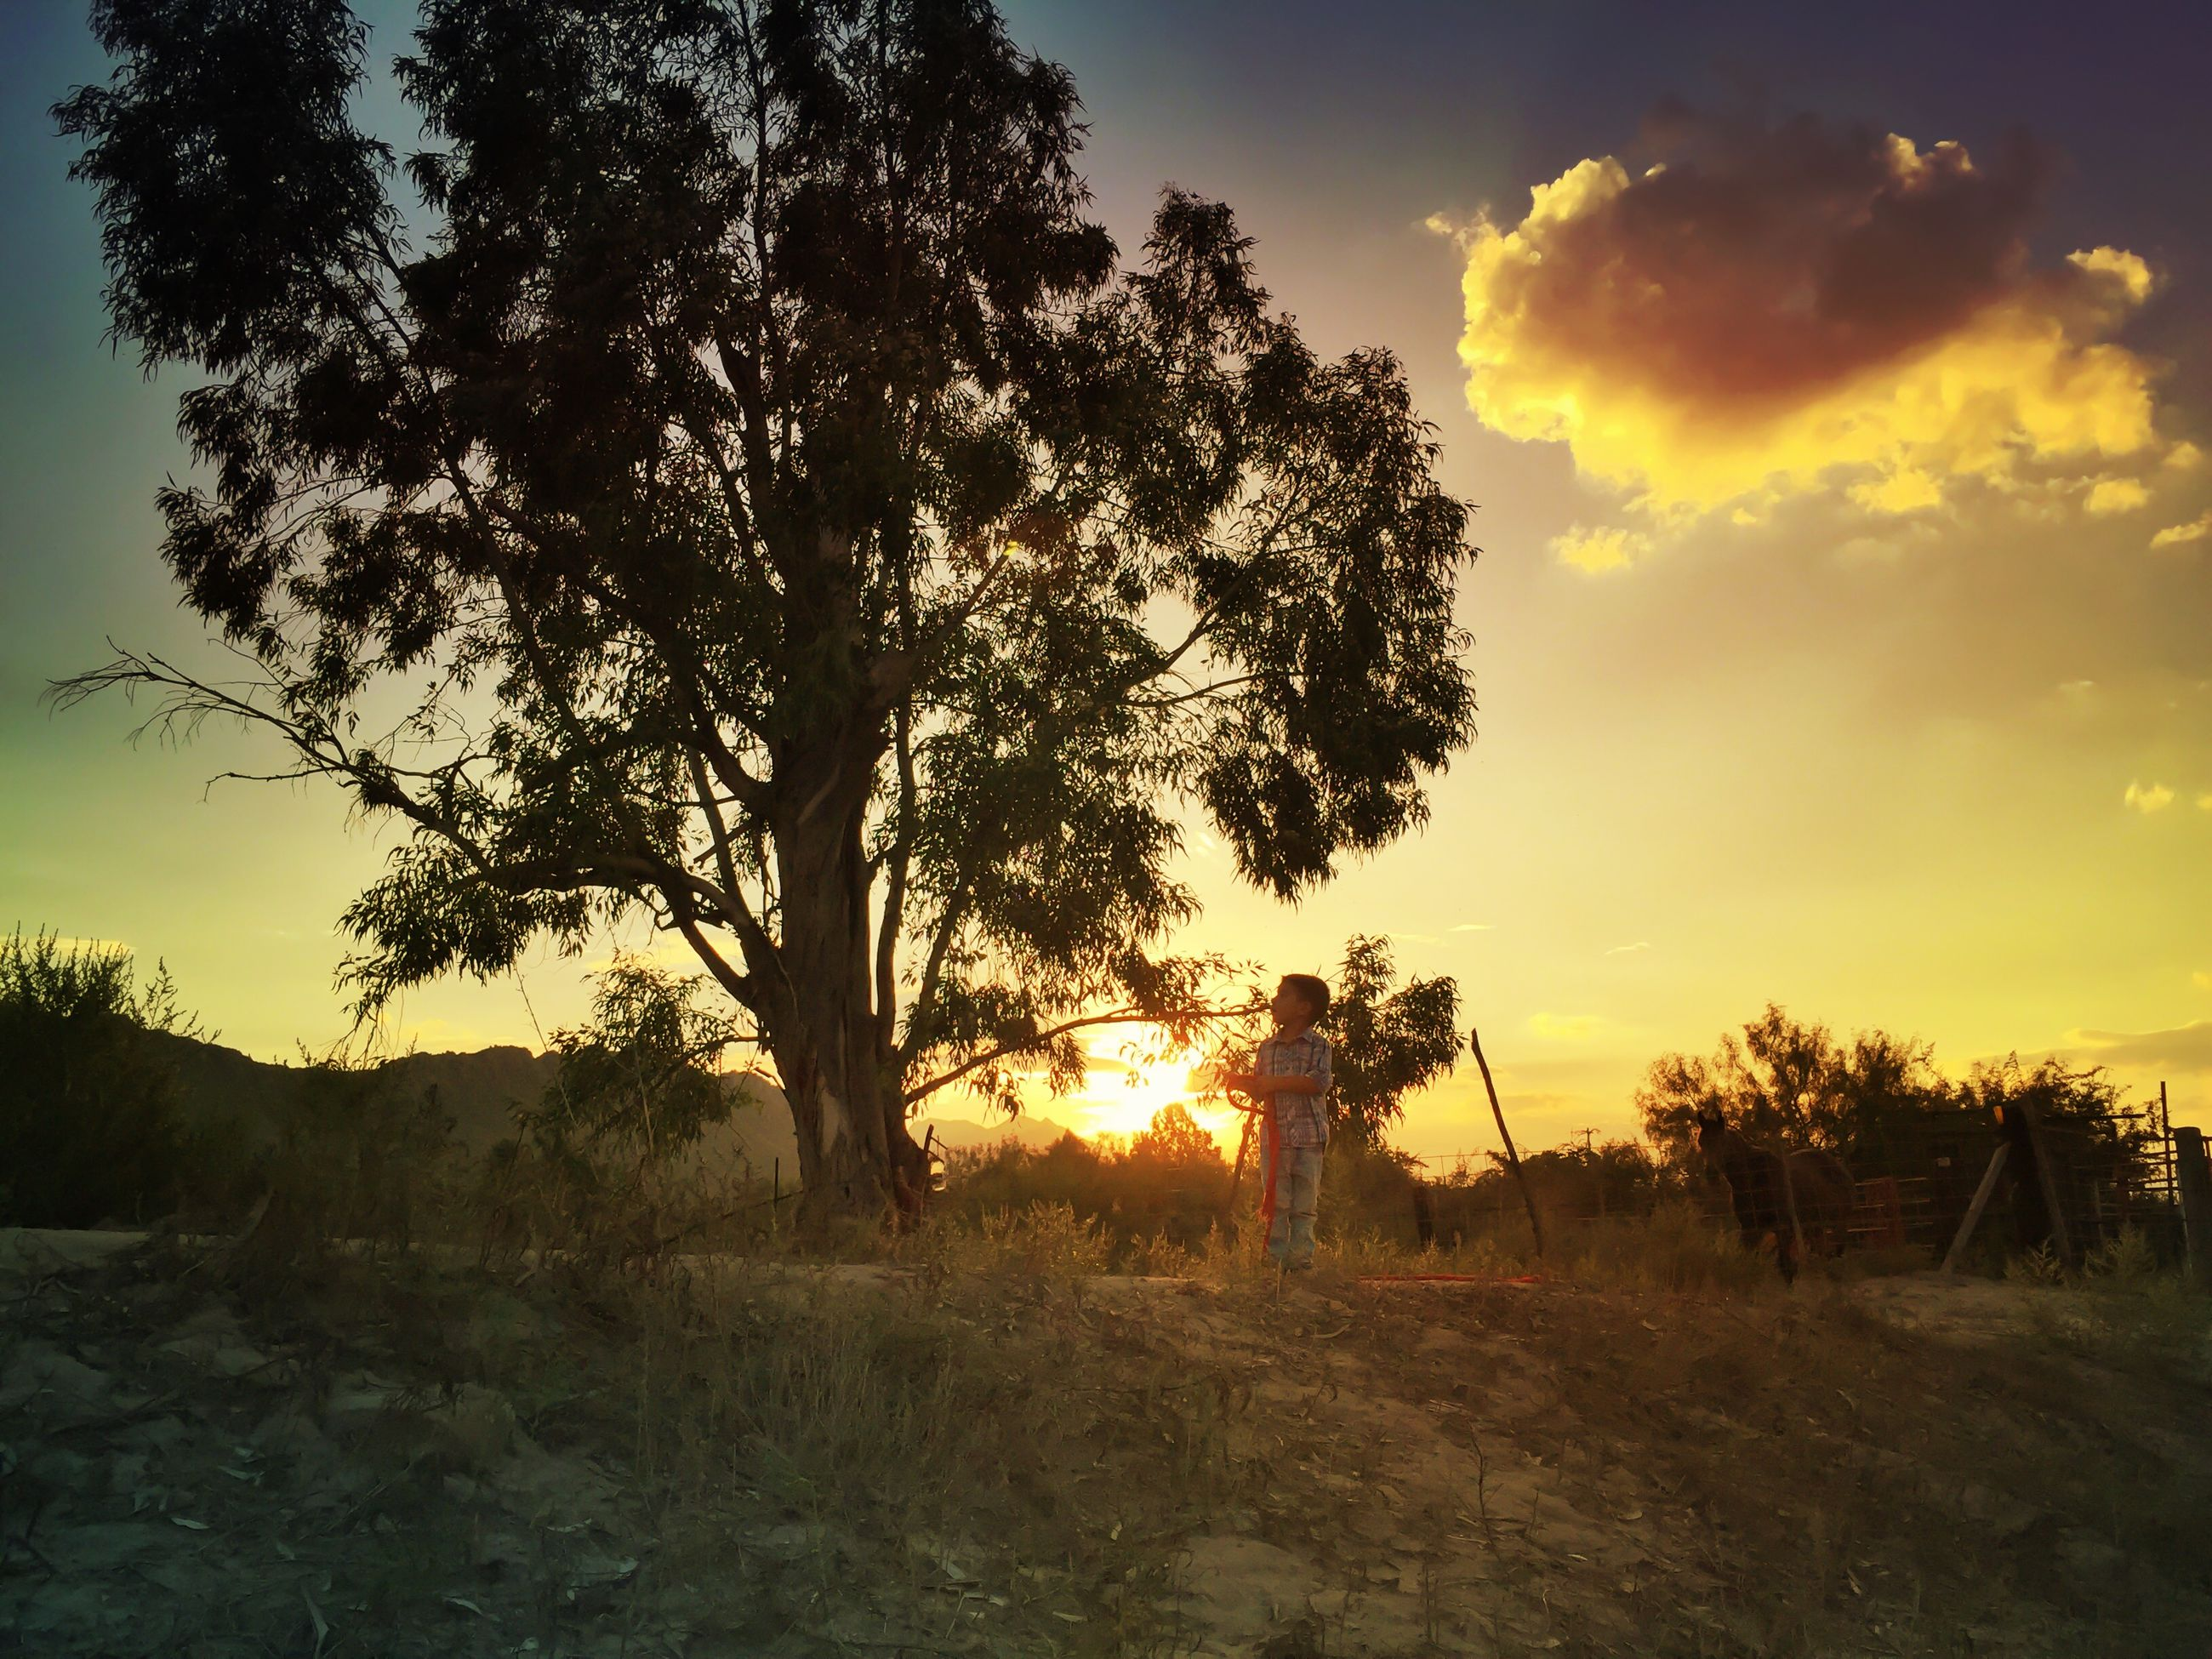 sunset, silhouette, tranquil scene, tranquility, sky, tree, sun, scenics, orange color, beauty in nature, landscape, nature, field, idyllic, sunlight, cloud - sky, back lit, growth, non-urban scene, outdoors